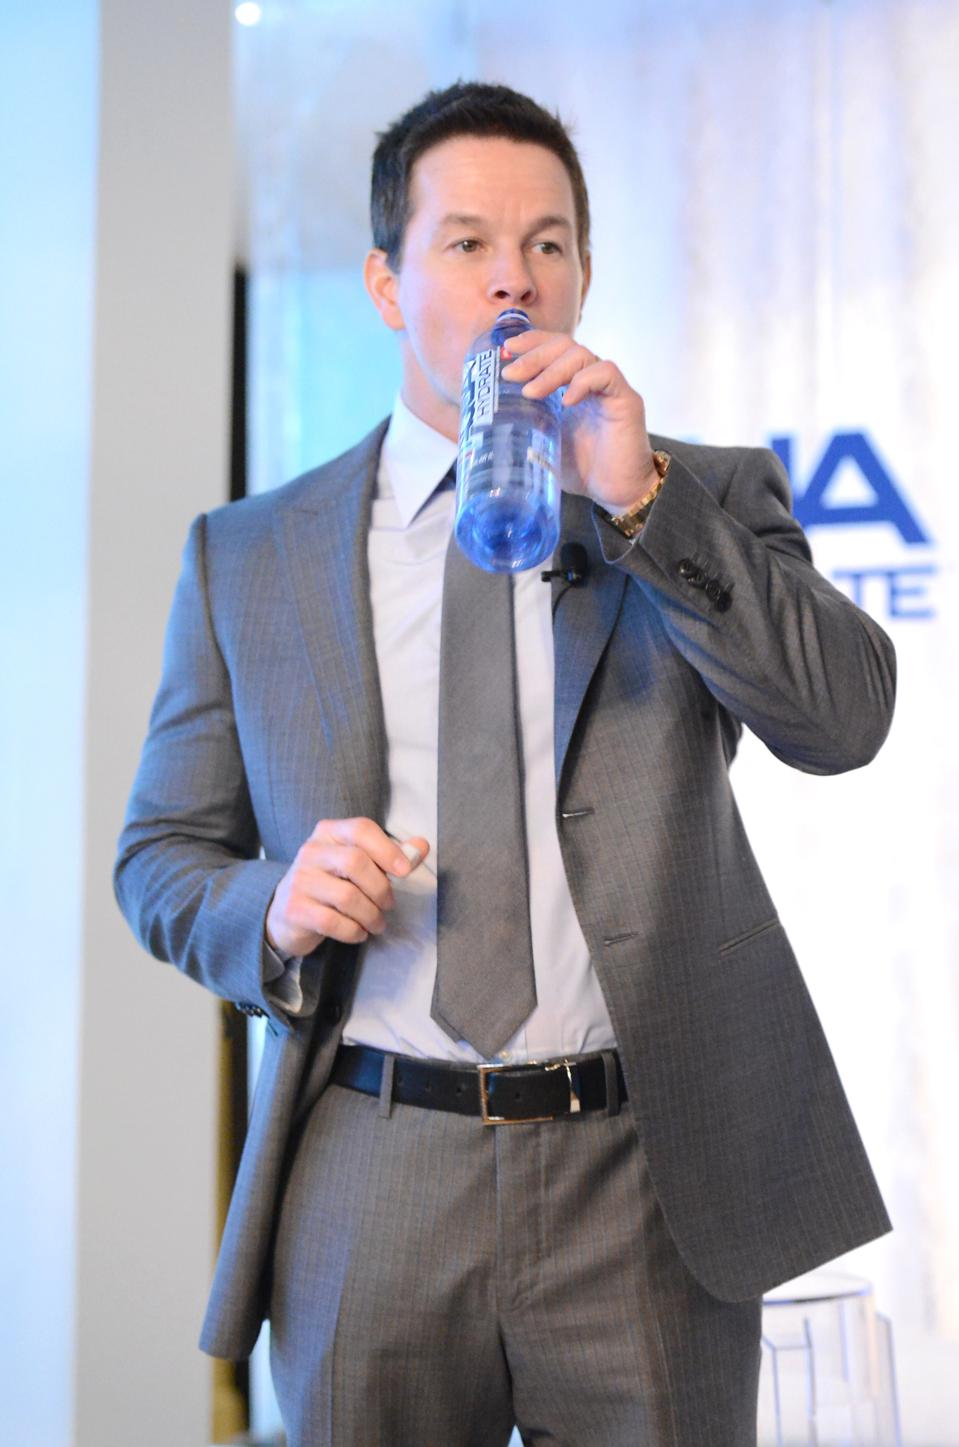 Sean ″Diddy″ Combs And Mark Wahlberg Host Press Conference To Announce Their Newest Venture, Water Brand AQUAhydrate